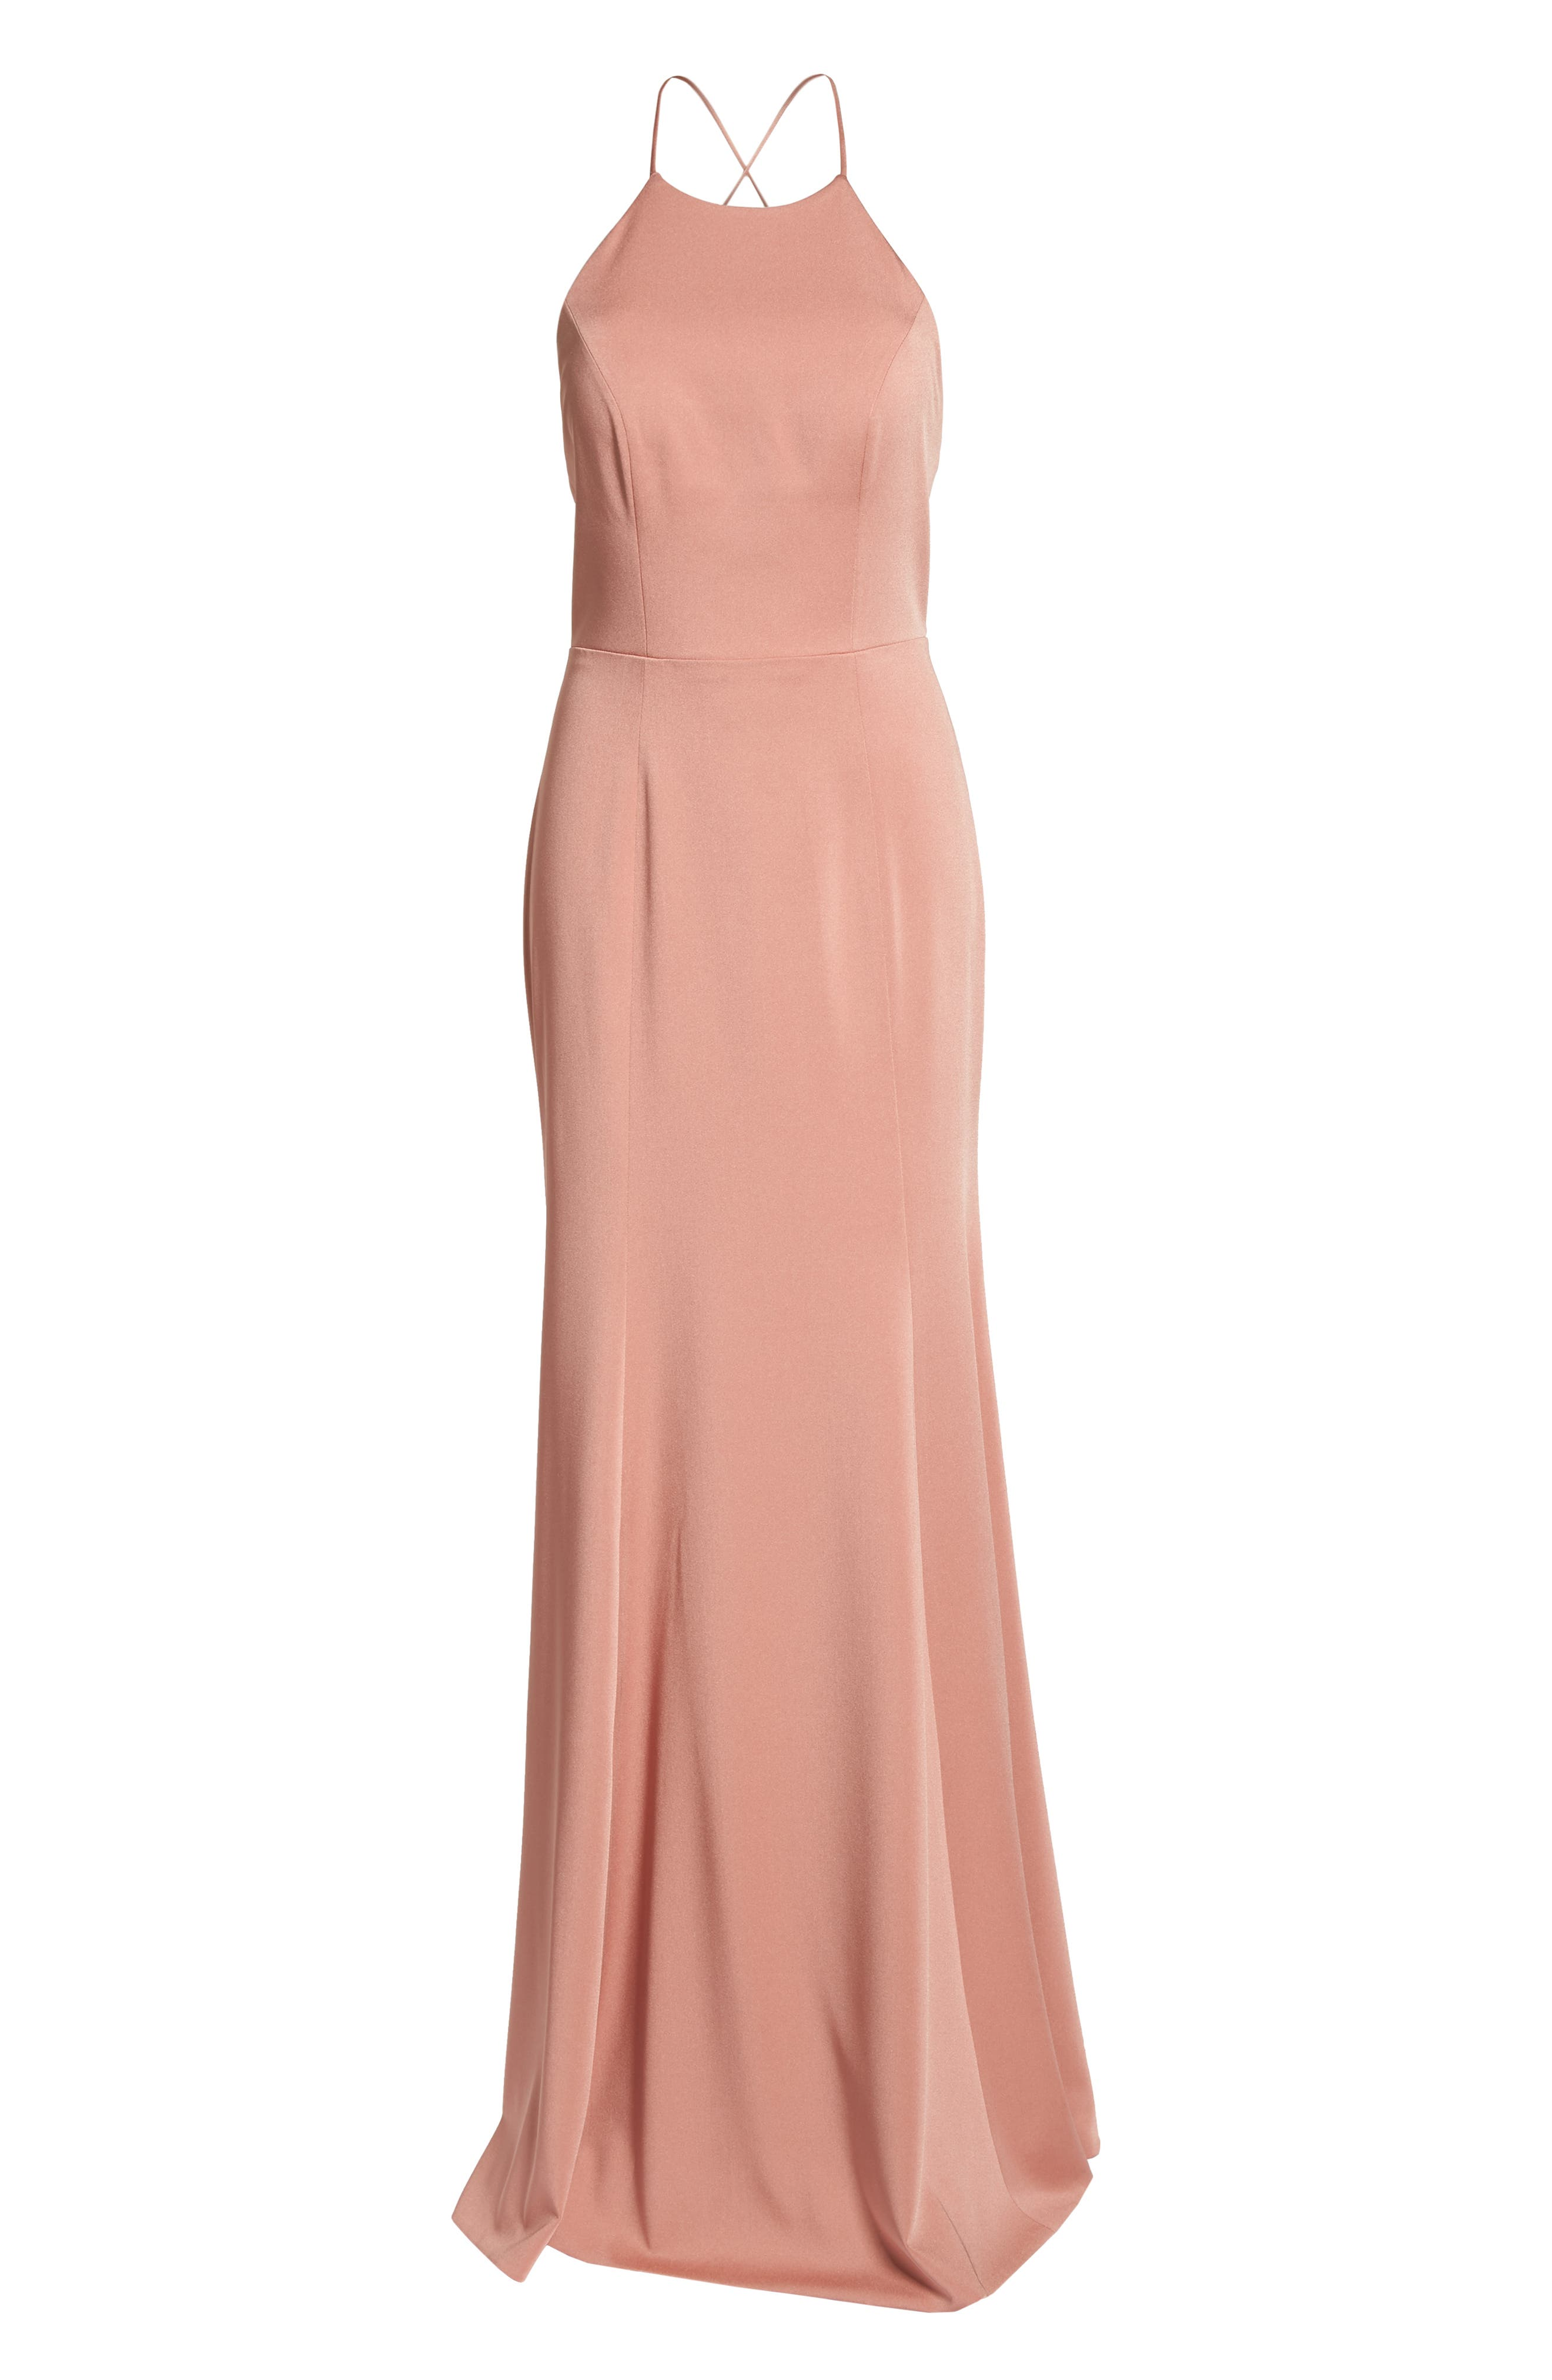 Naomi Luxe Crepe Halter Gown,                             Alternate thumbnail 6, color,                             Sedona Sunset